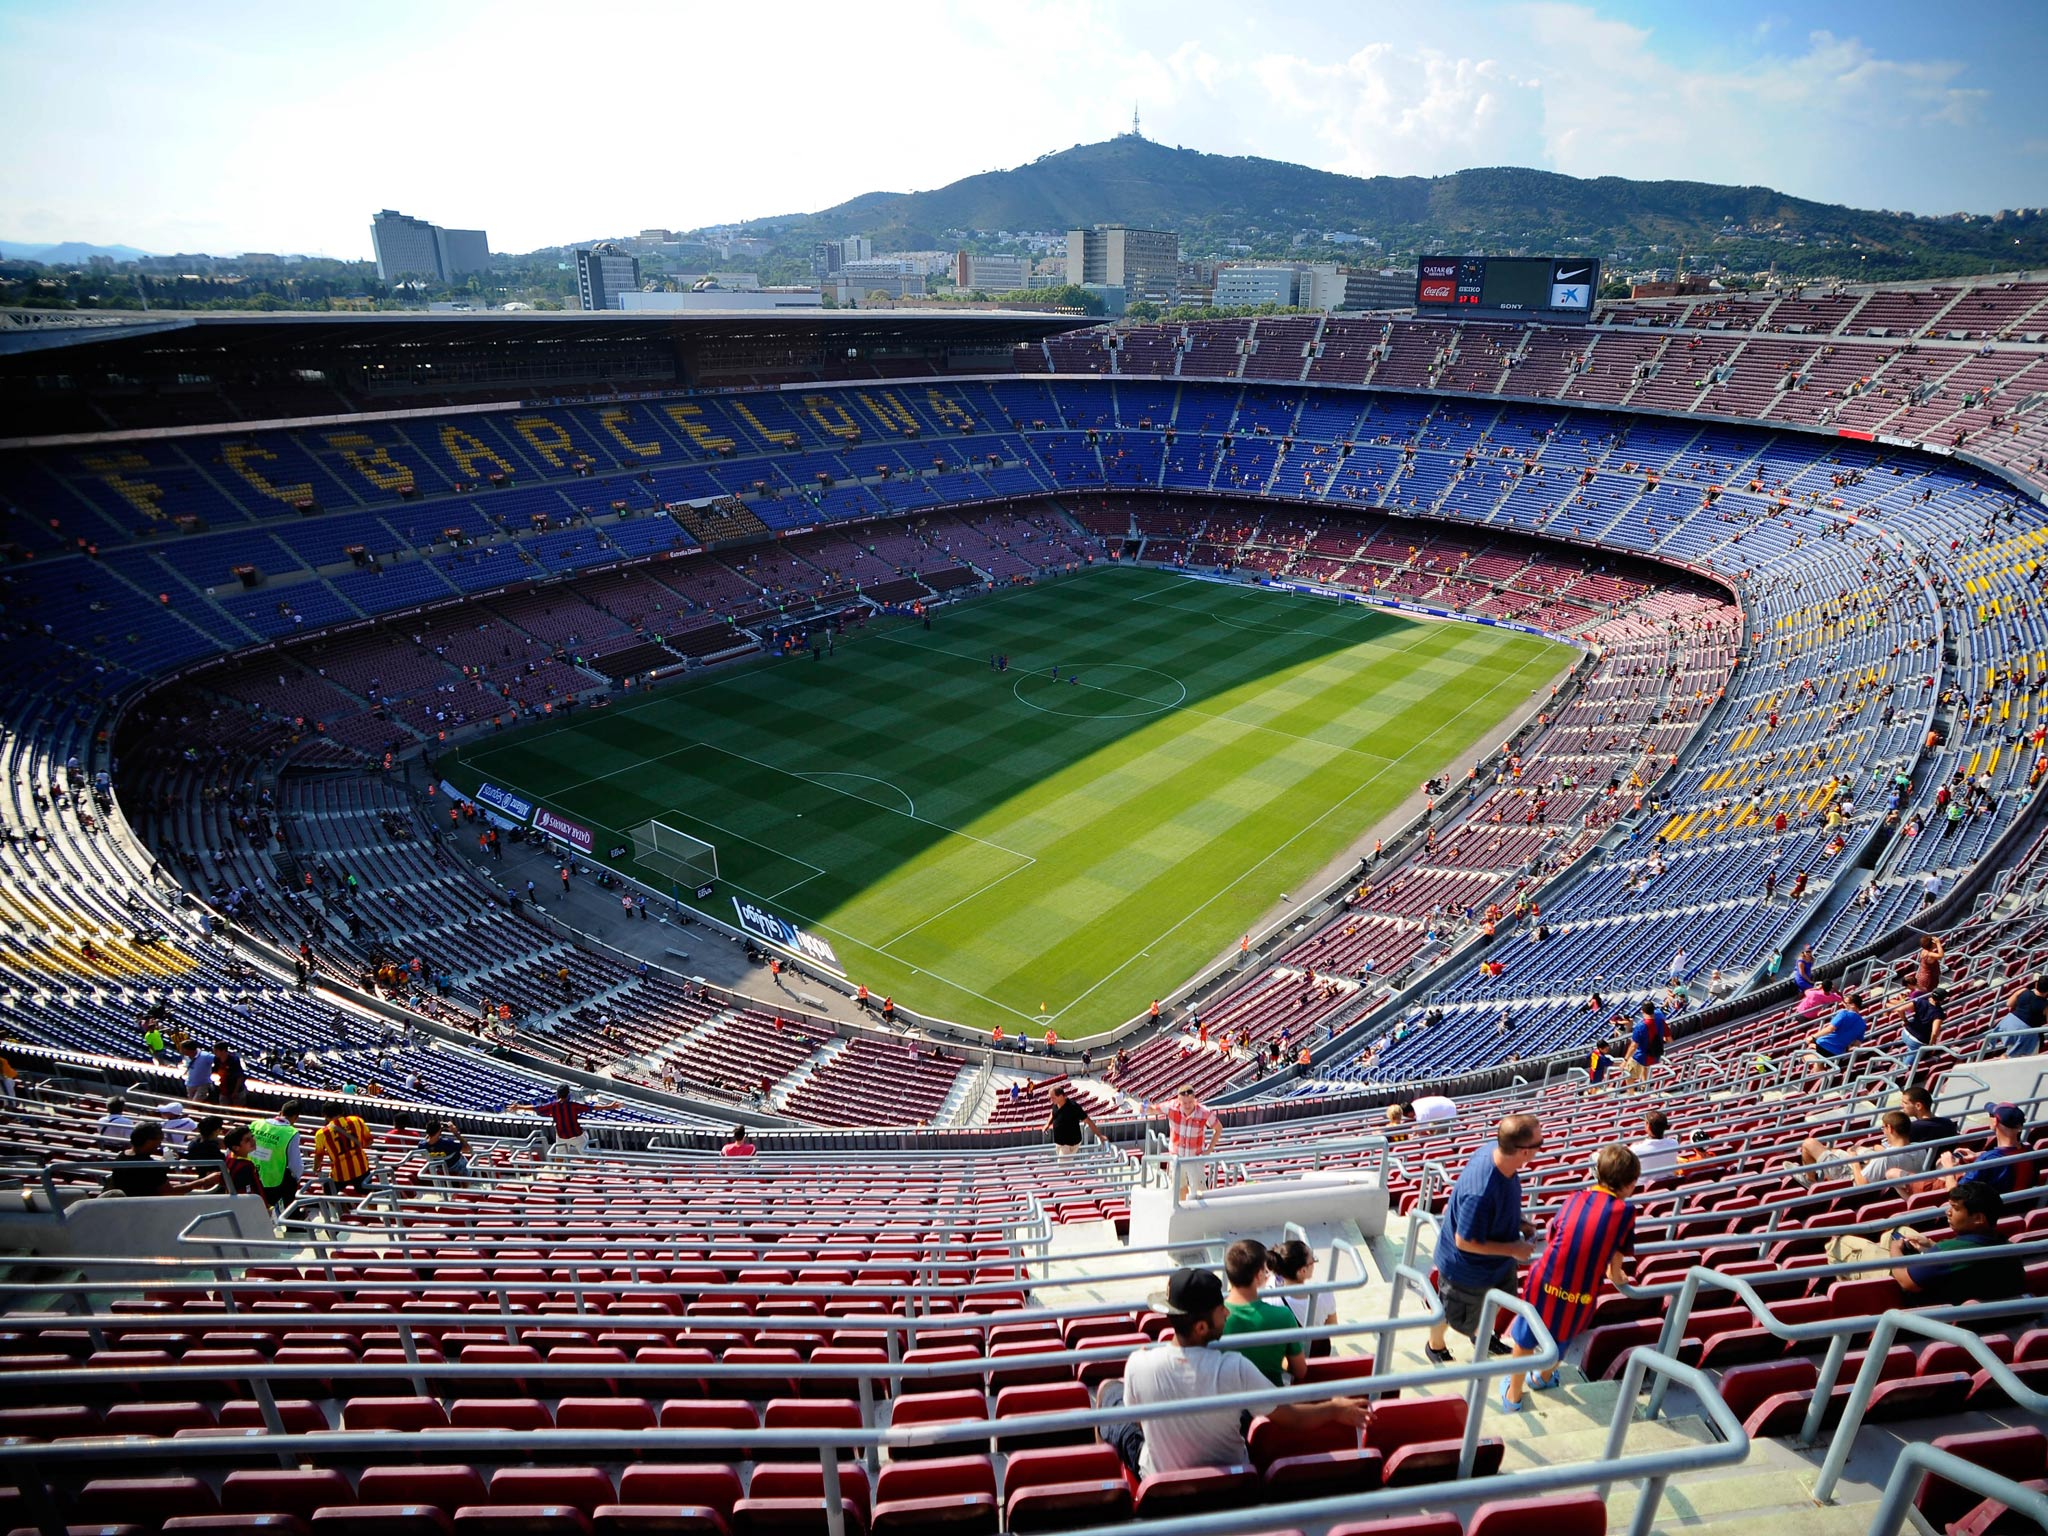 ashes to alves barcelona reveal plans to bury 30 000 fans under the nou camp the independent the independent bury 30 000 fans under the nou camp